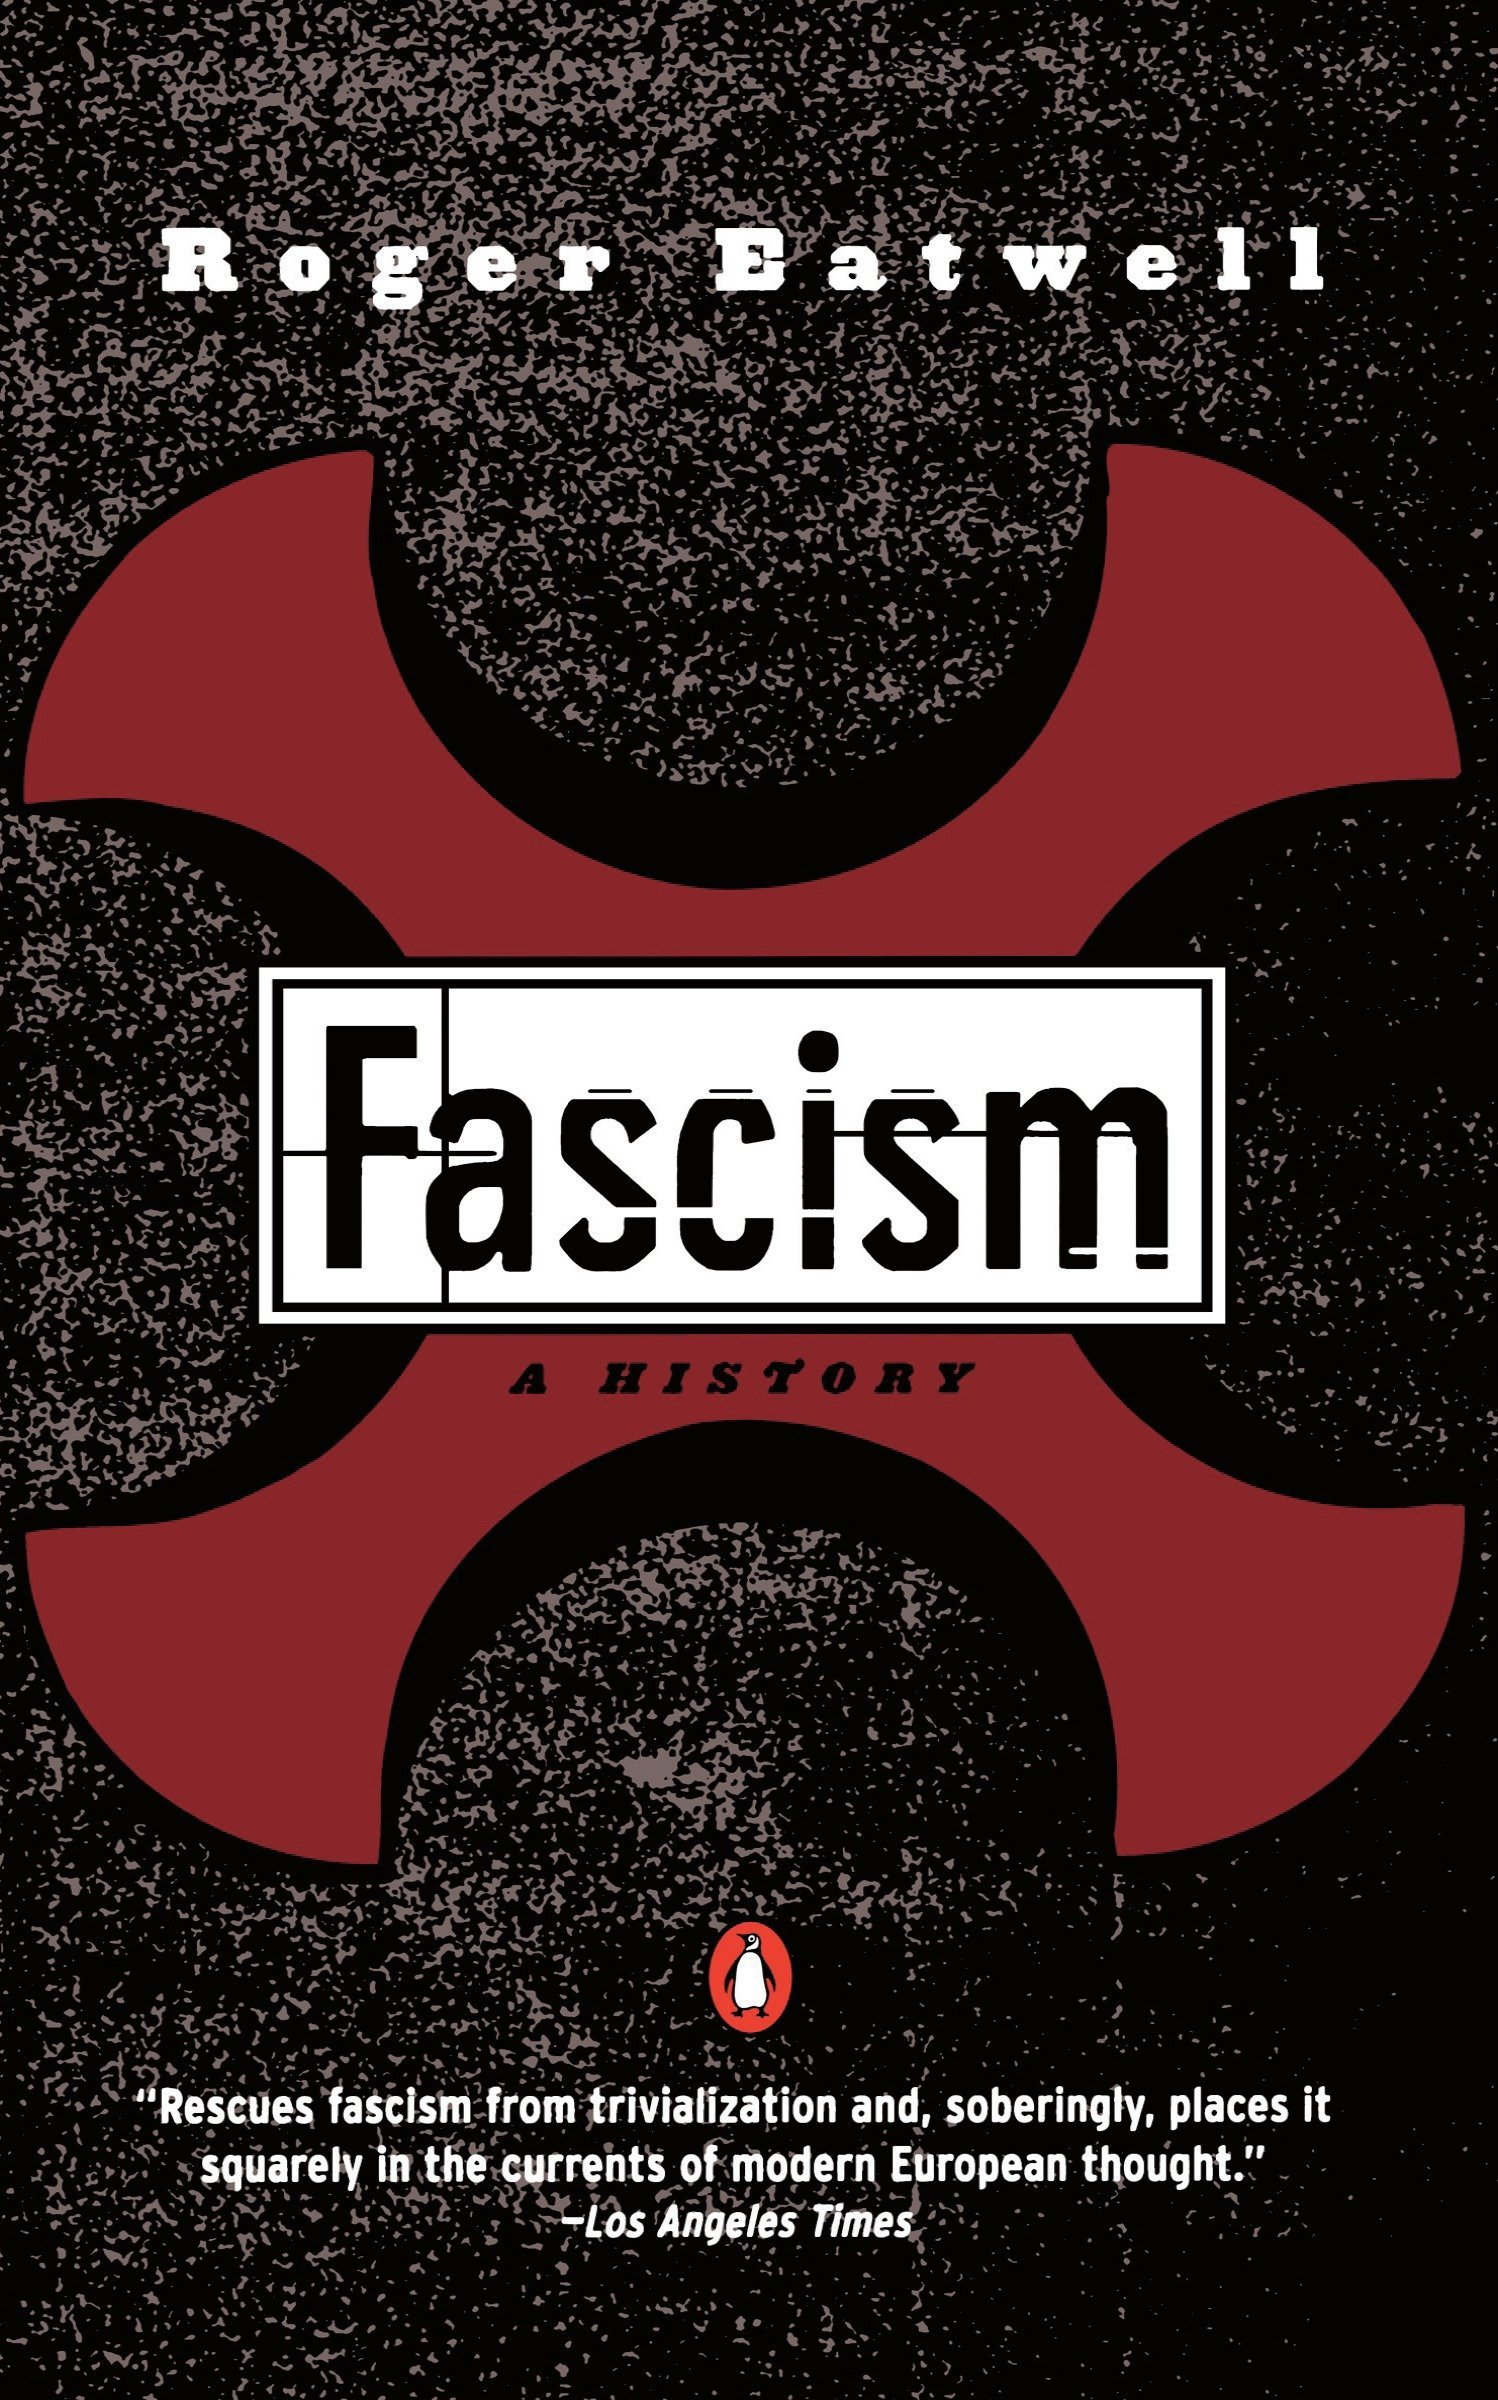 Fascism: A History: Roger Eatwell: 9780140257007: Amazon.com: Books